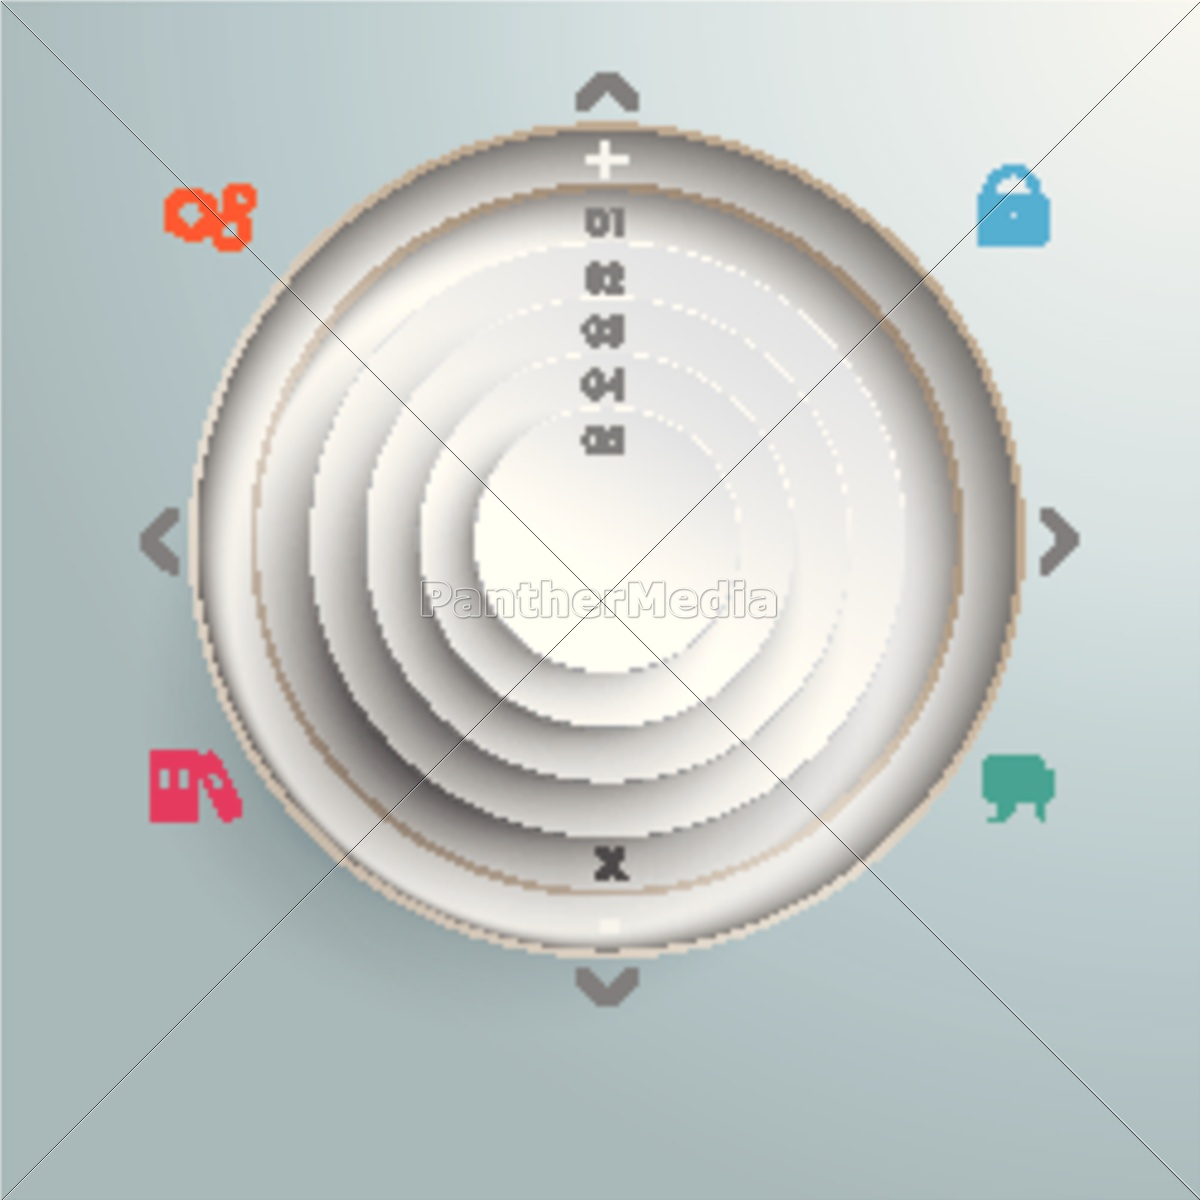 circle, in, cirlces, holes, infographic, design - 11398459